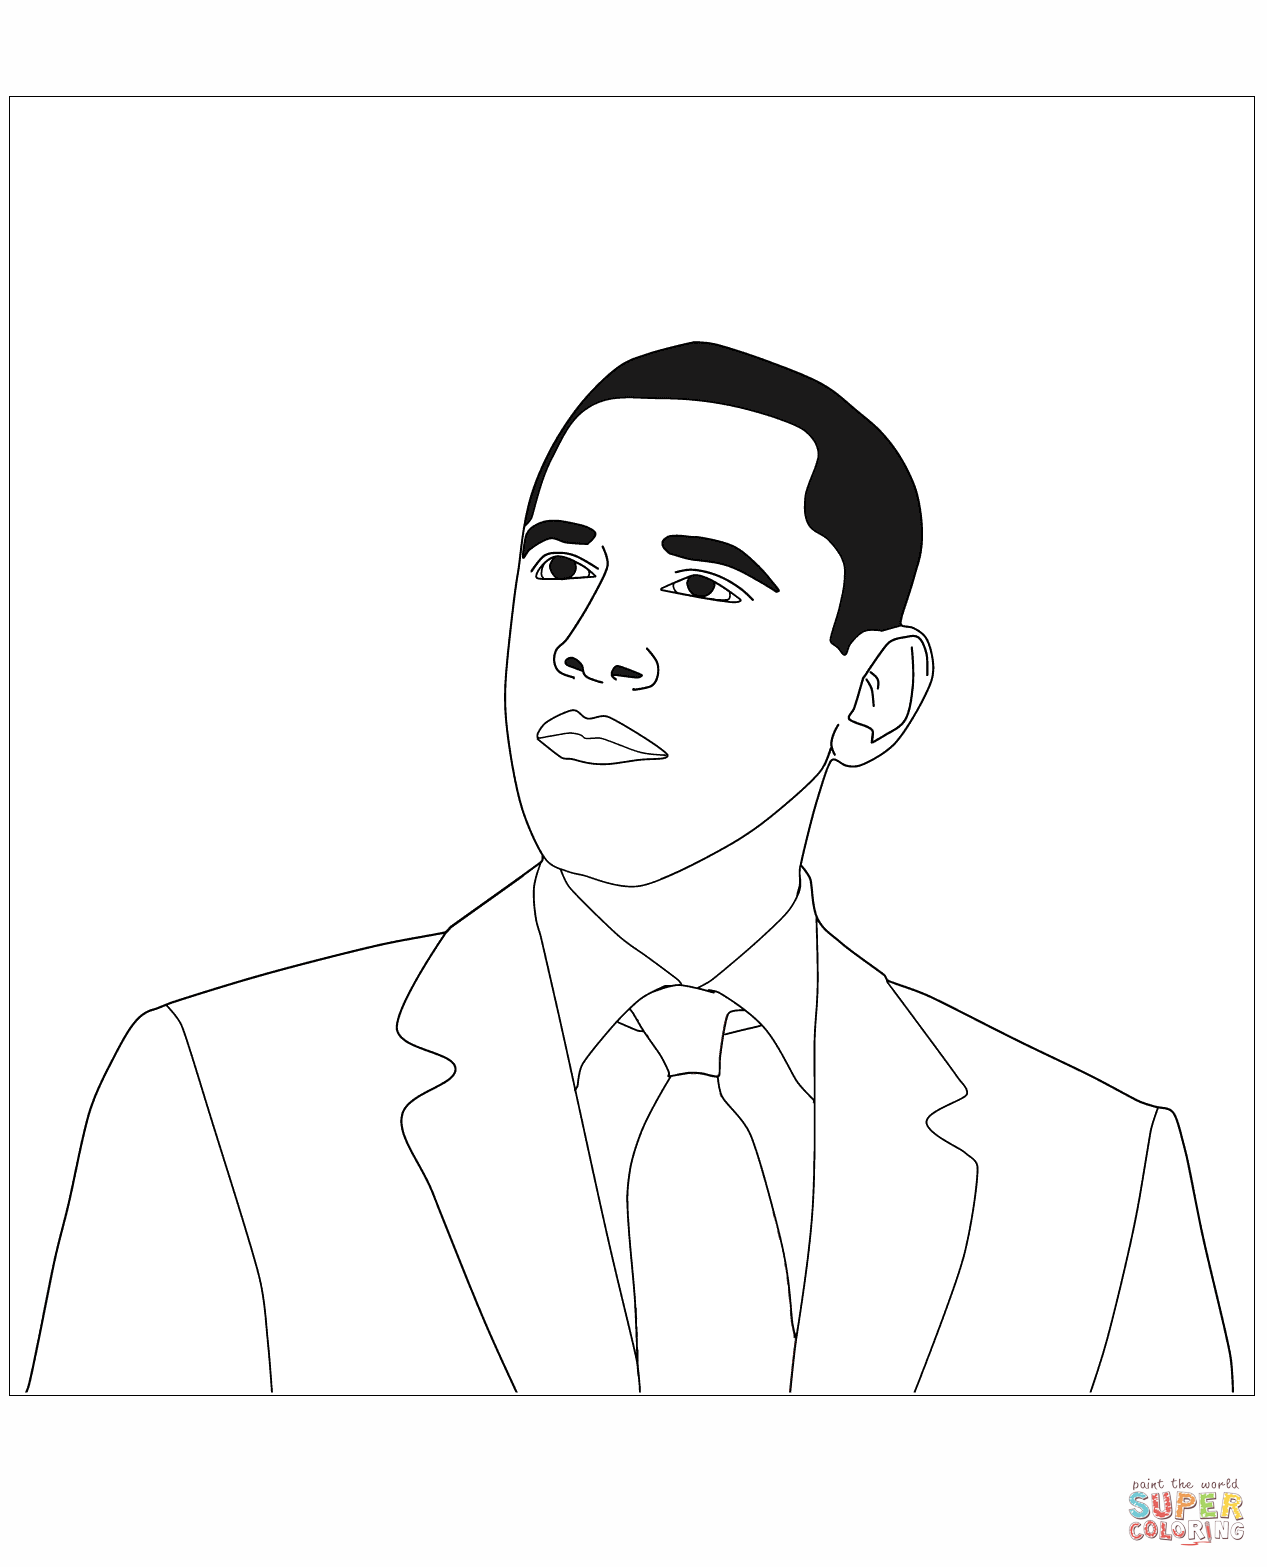 President Trump Page Coloring Pages